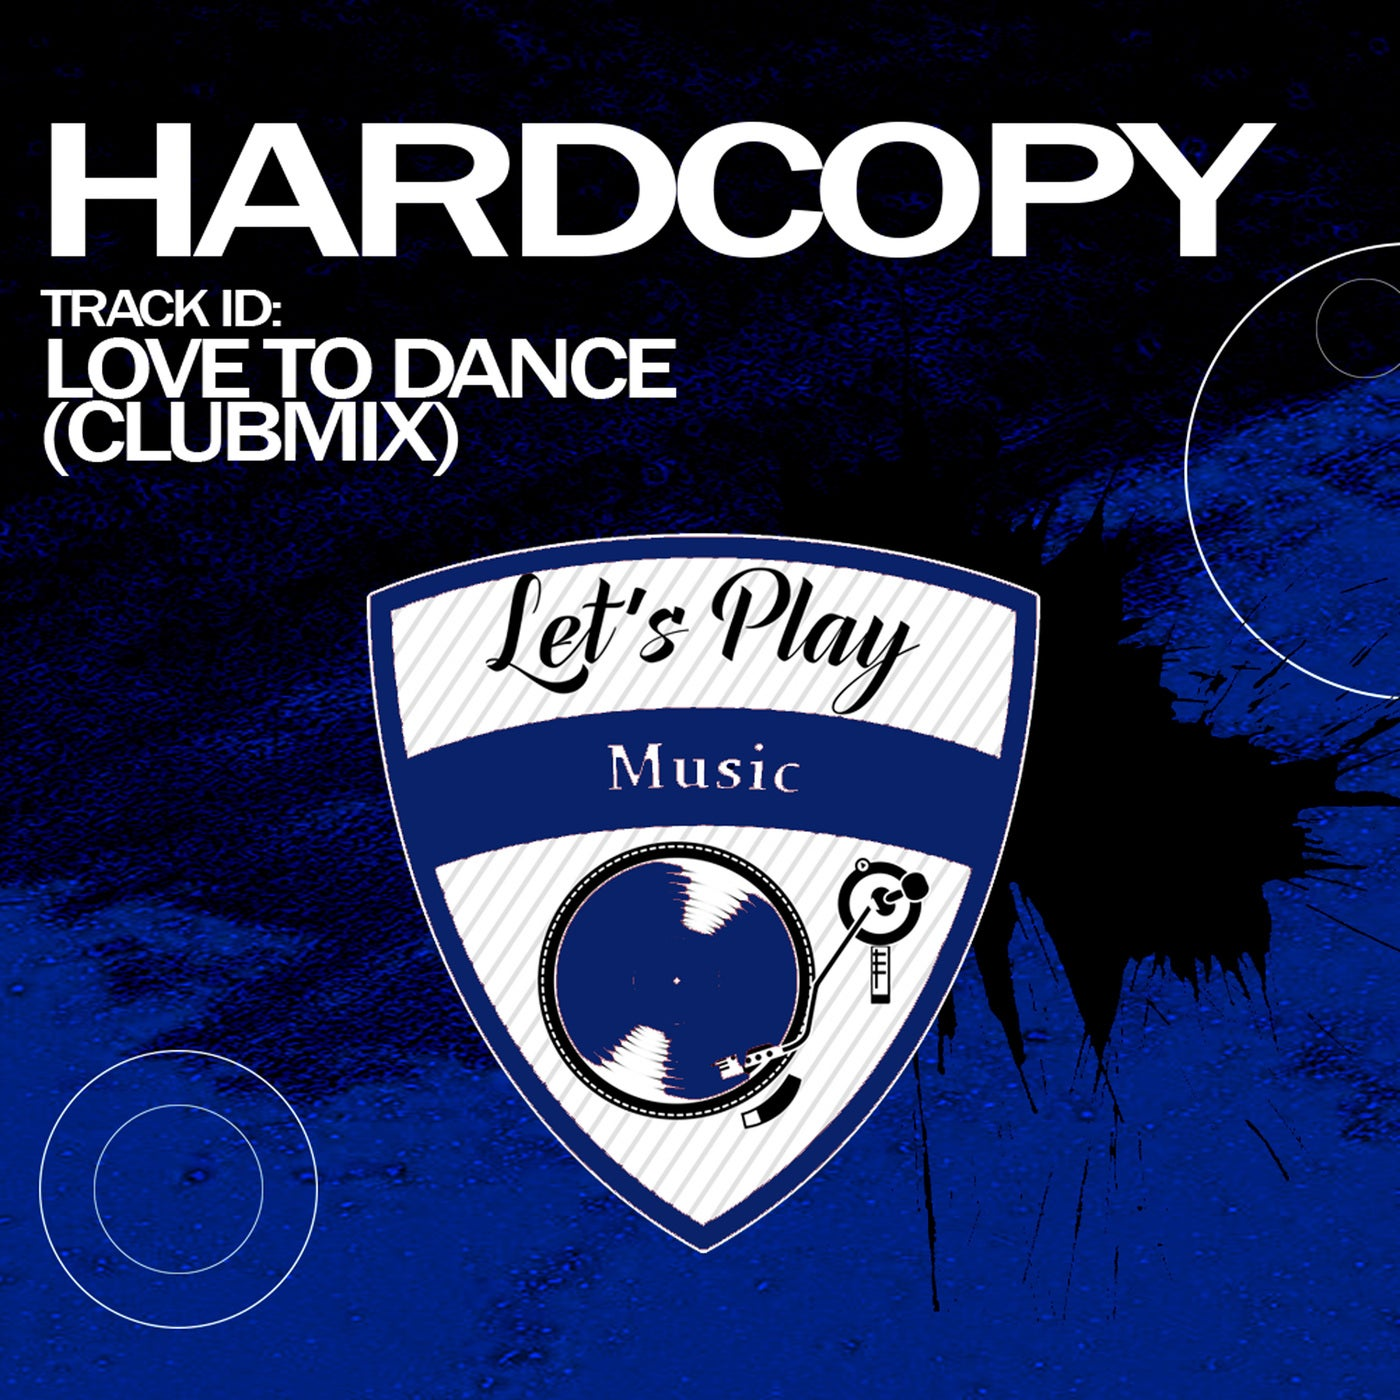 Love to Dance (Clubmix)